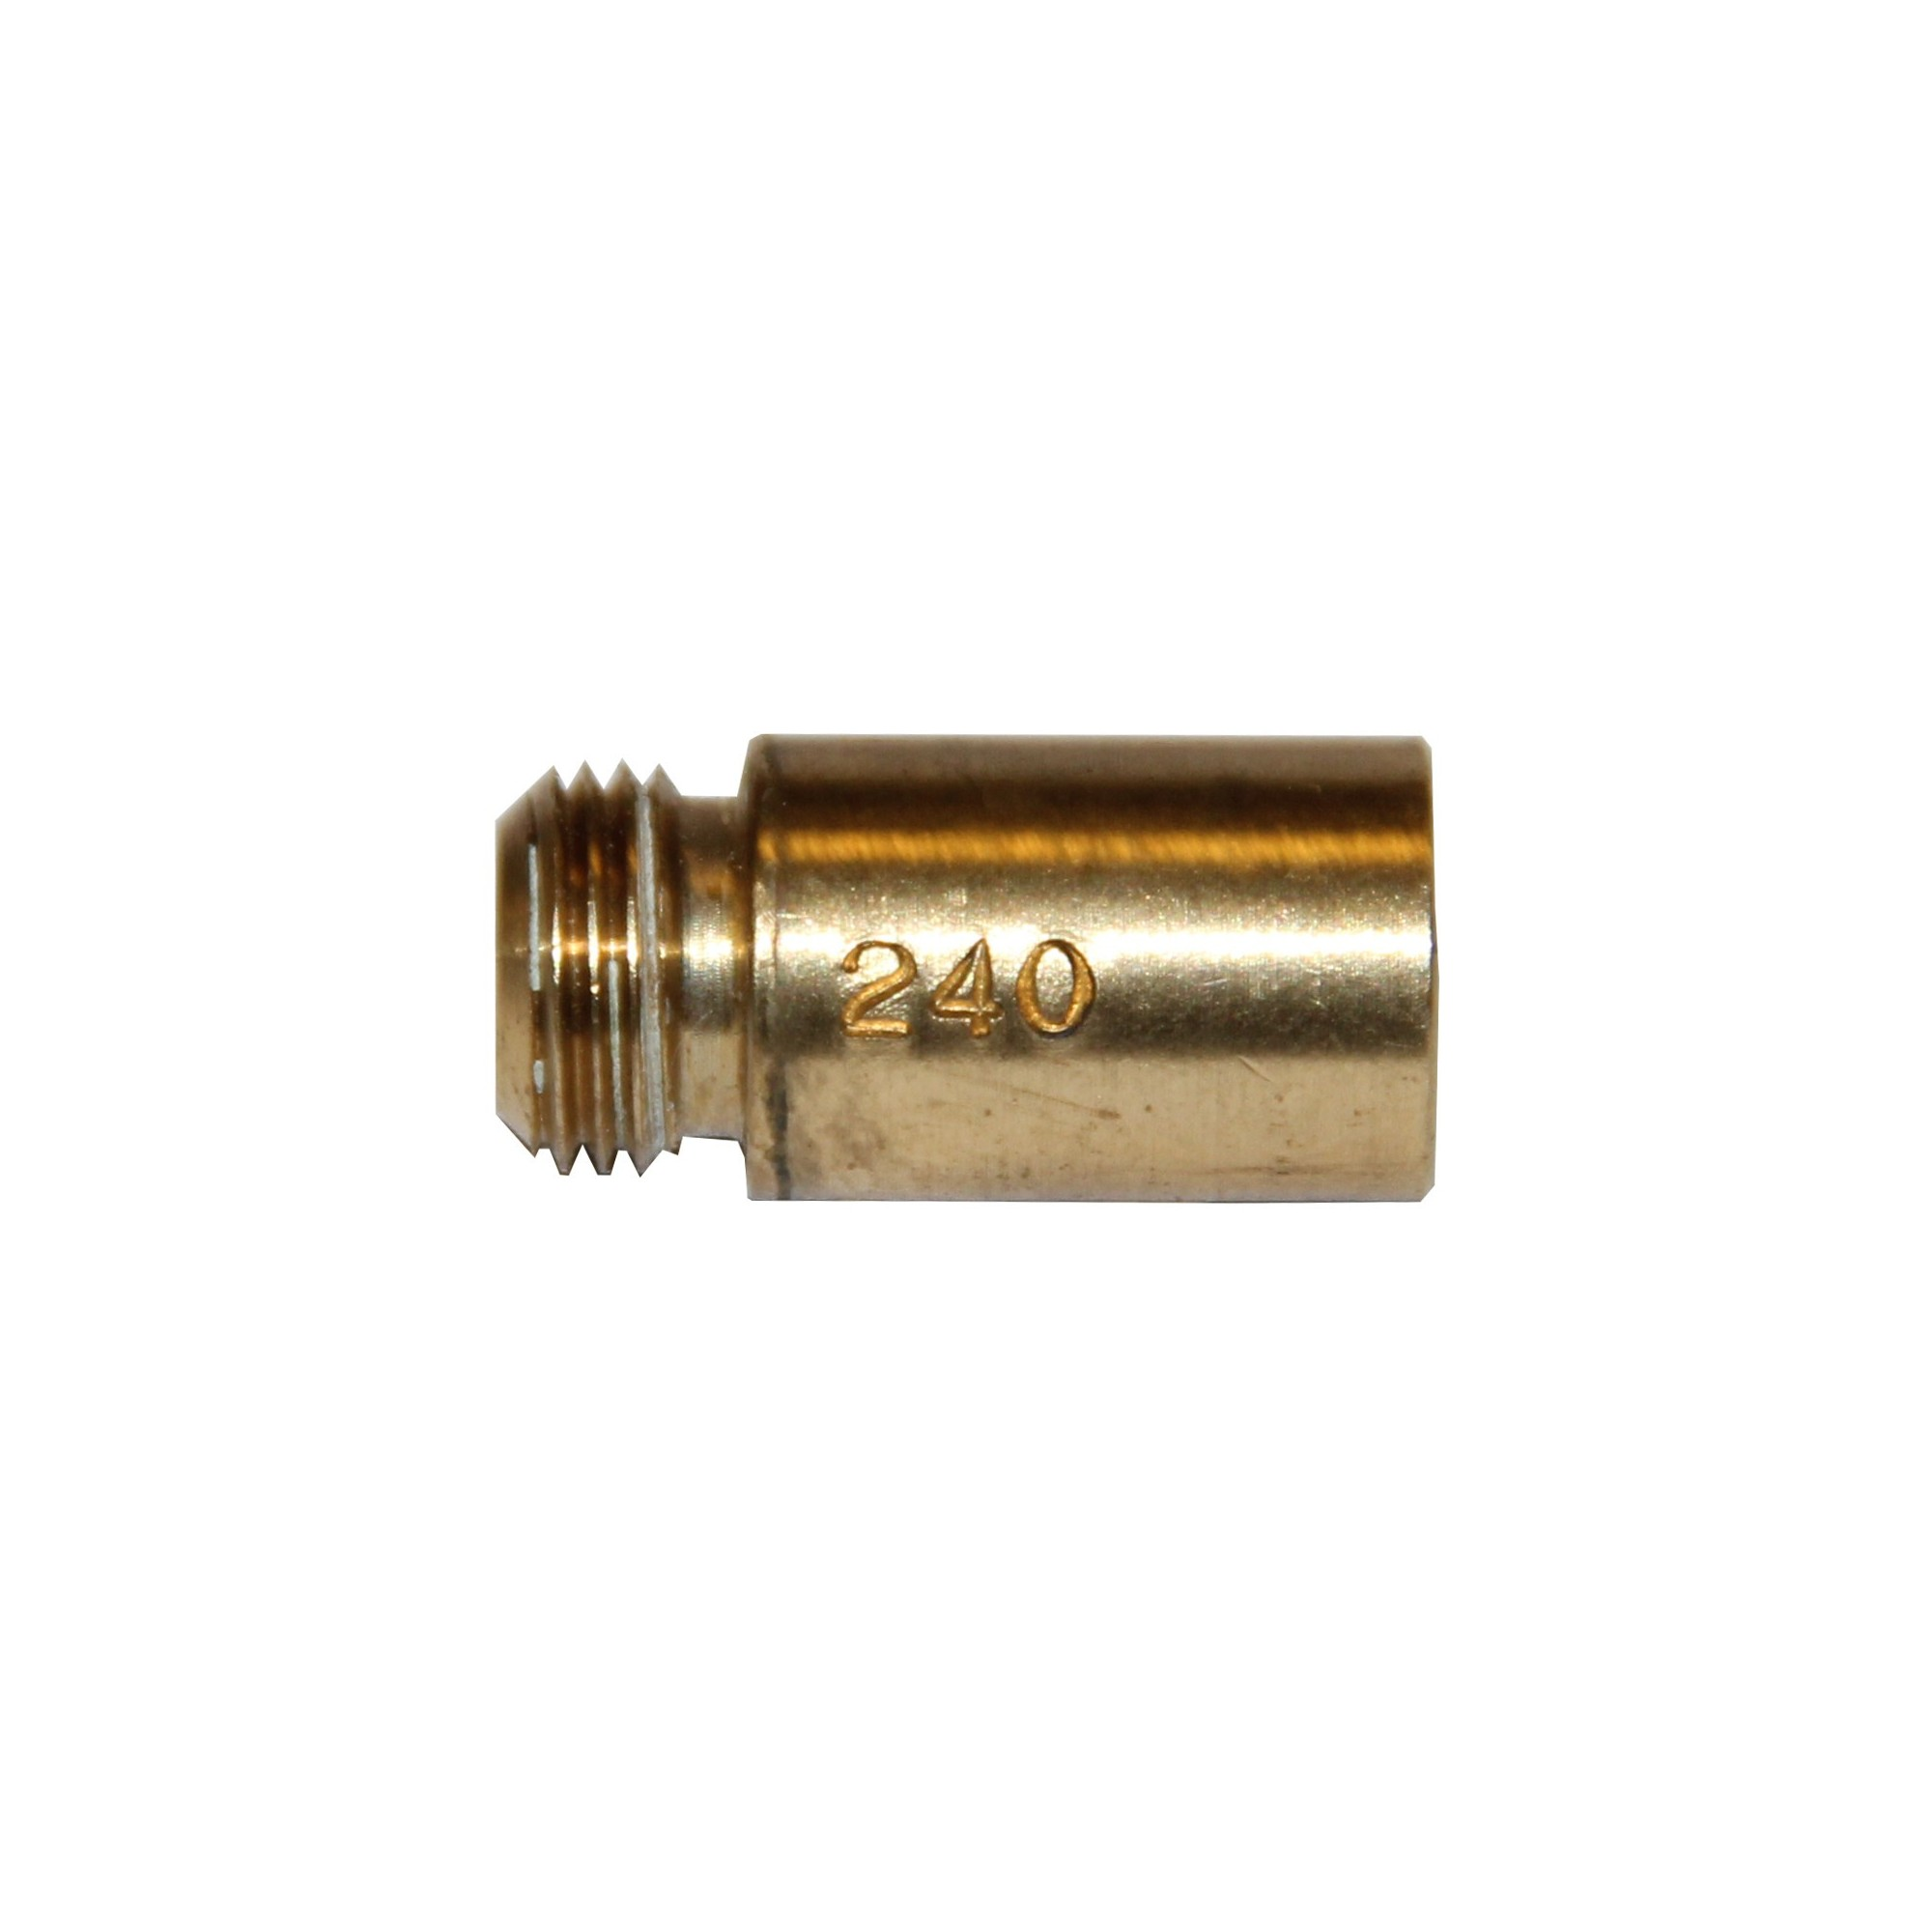 HEAD INJECTOR GAS: 240 x 16VB